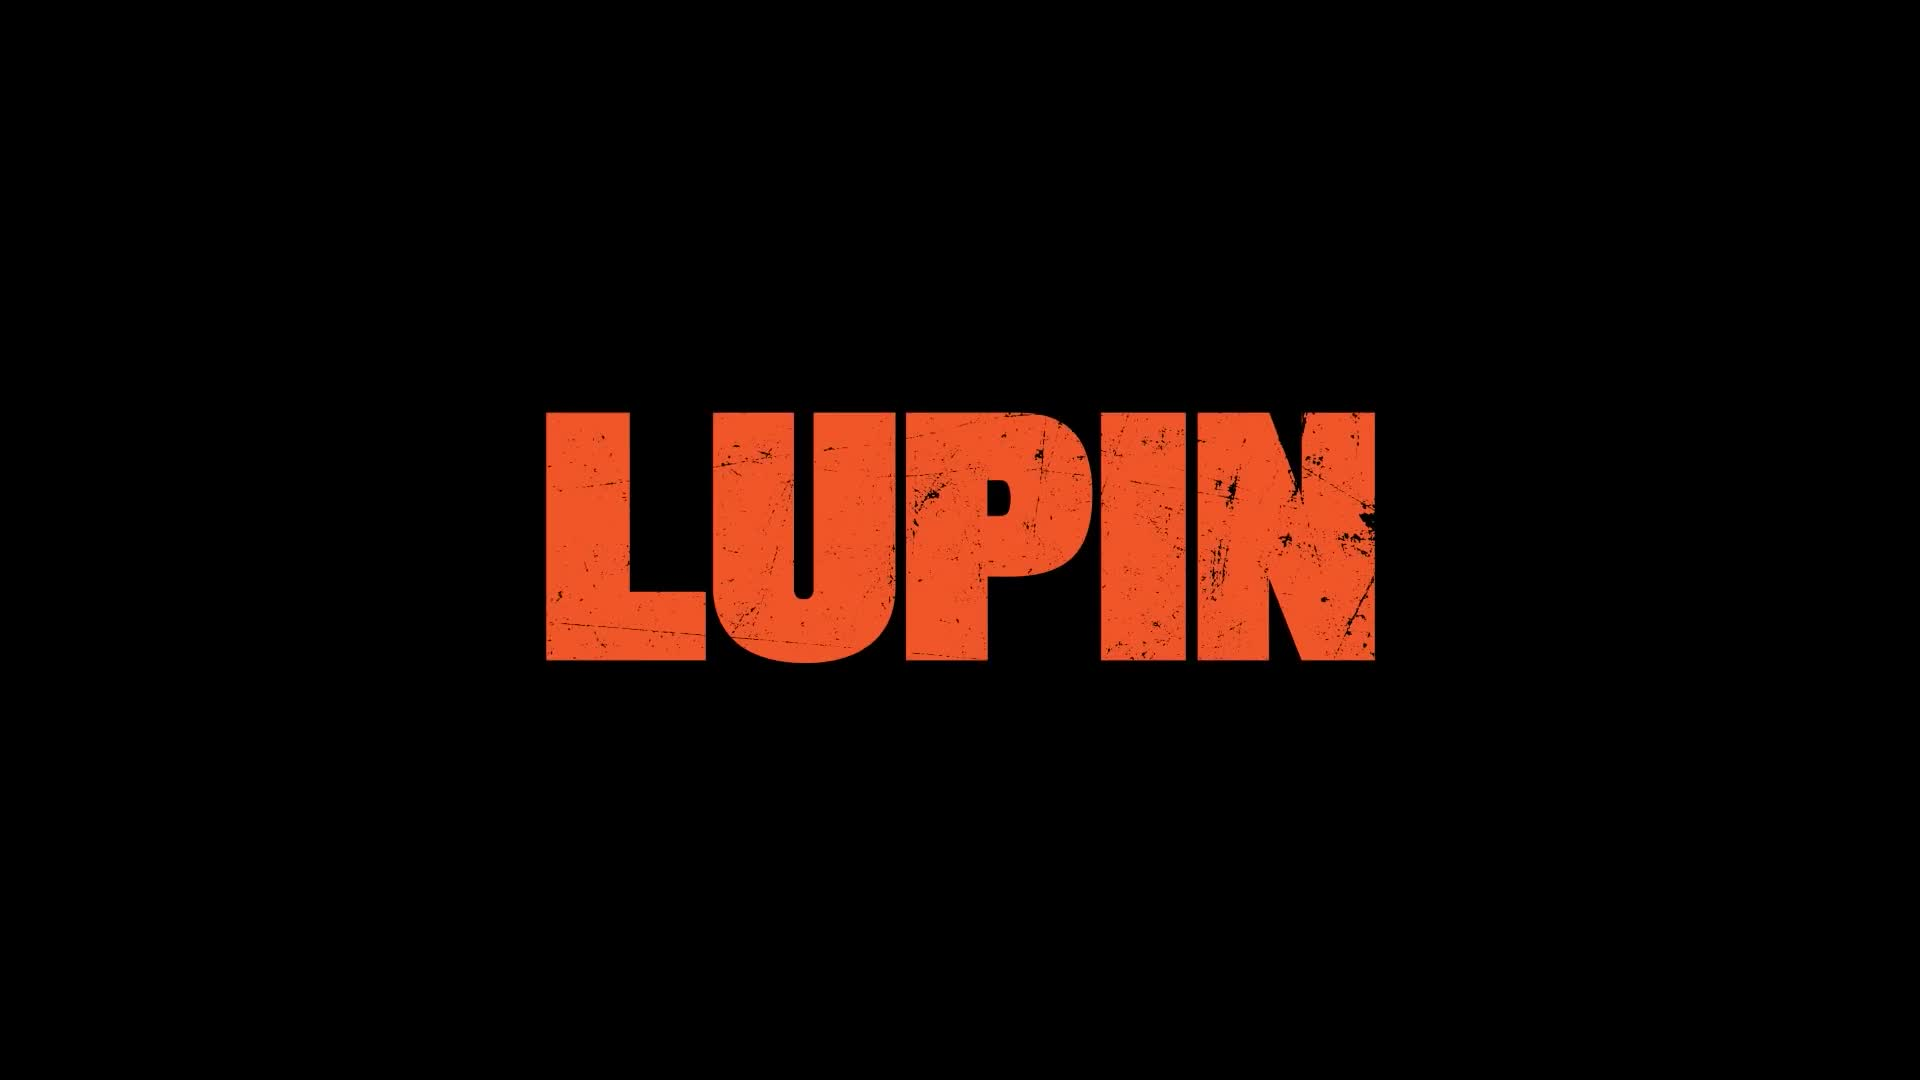 Lupin Background 9